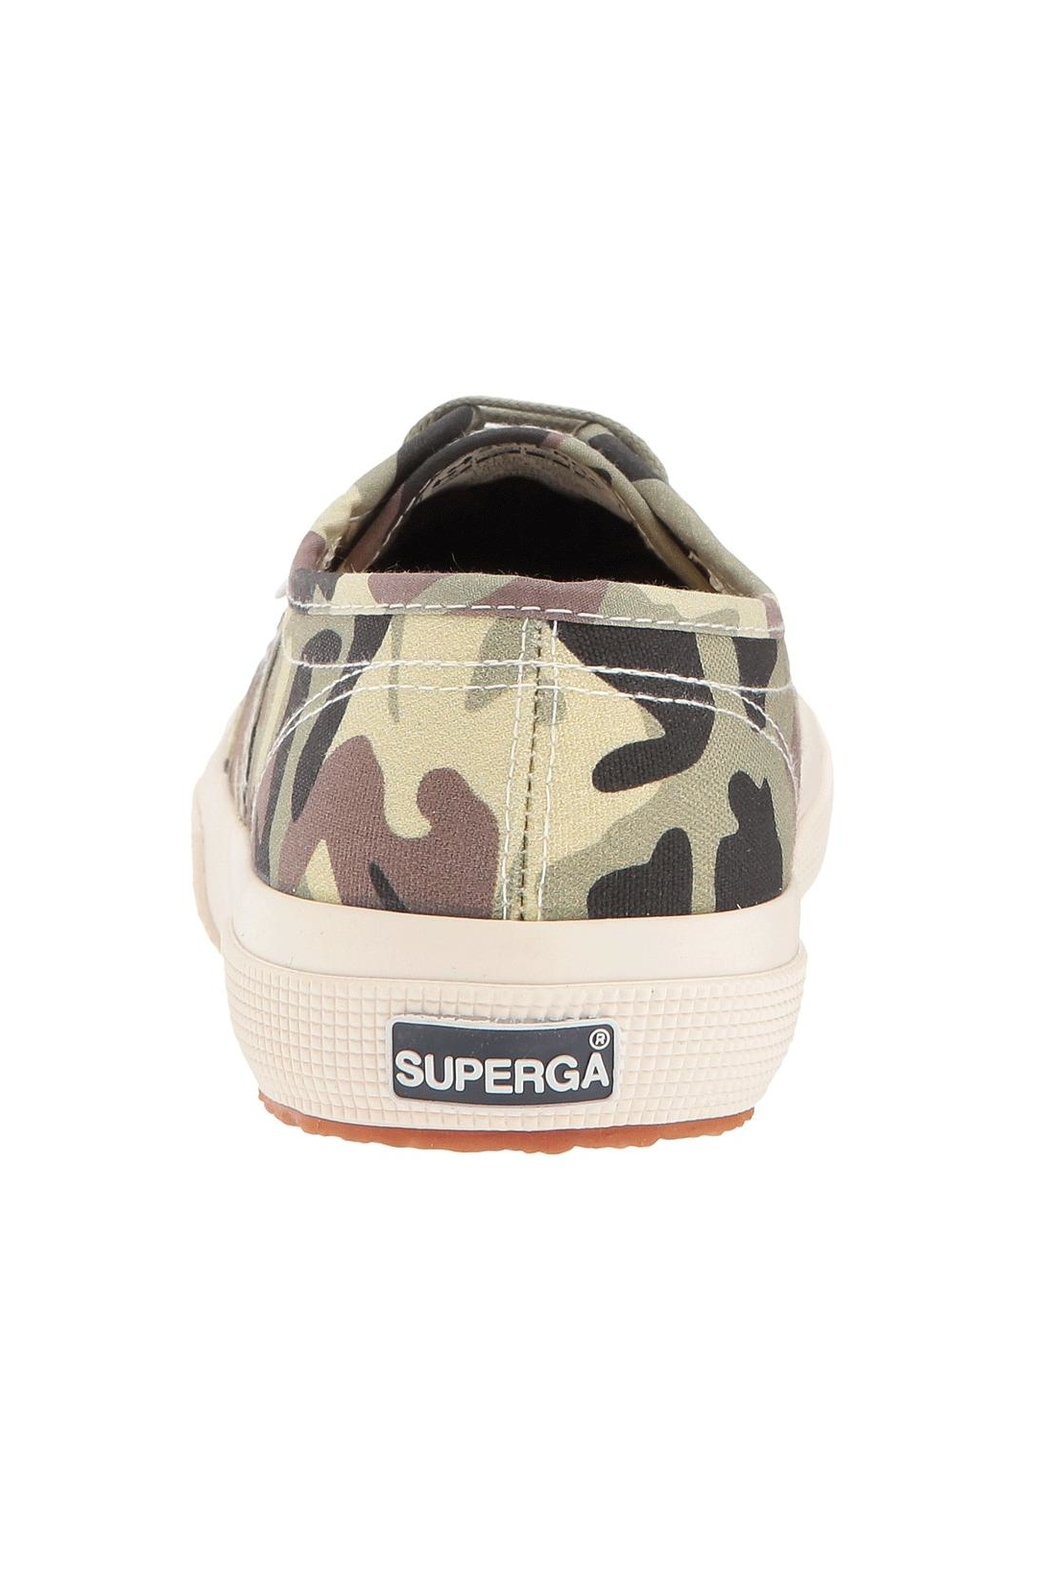 Superga Camouflage Sneakers - Side Cropped Image